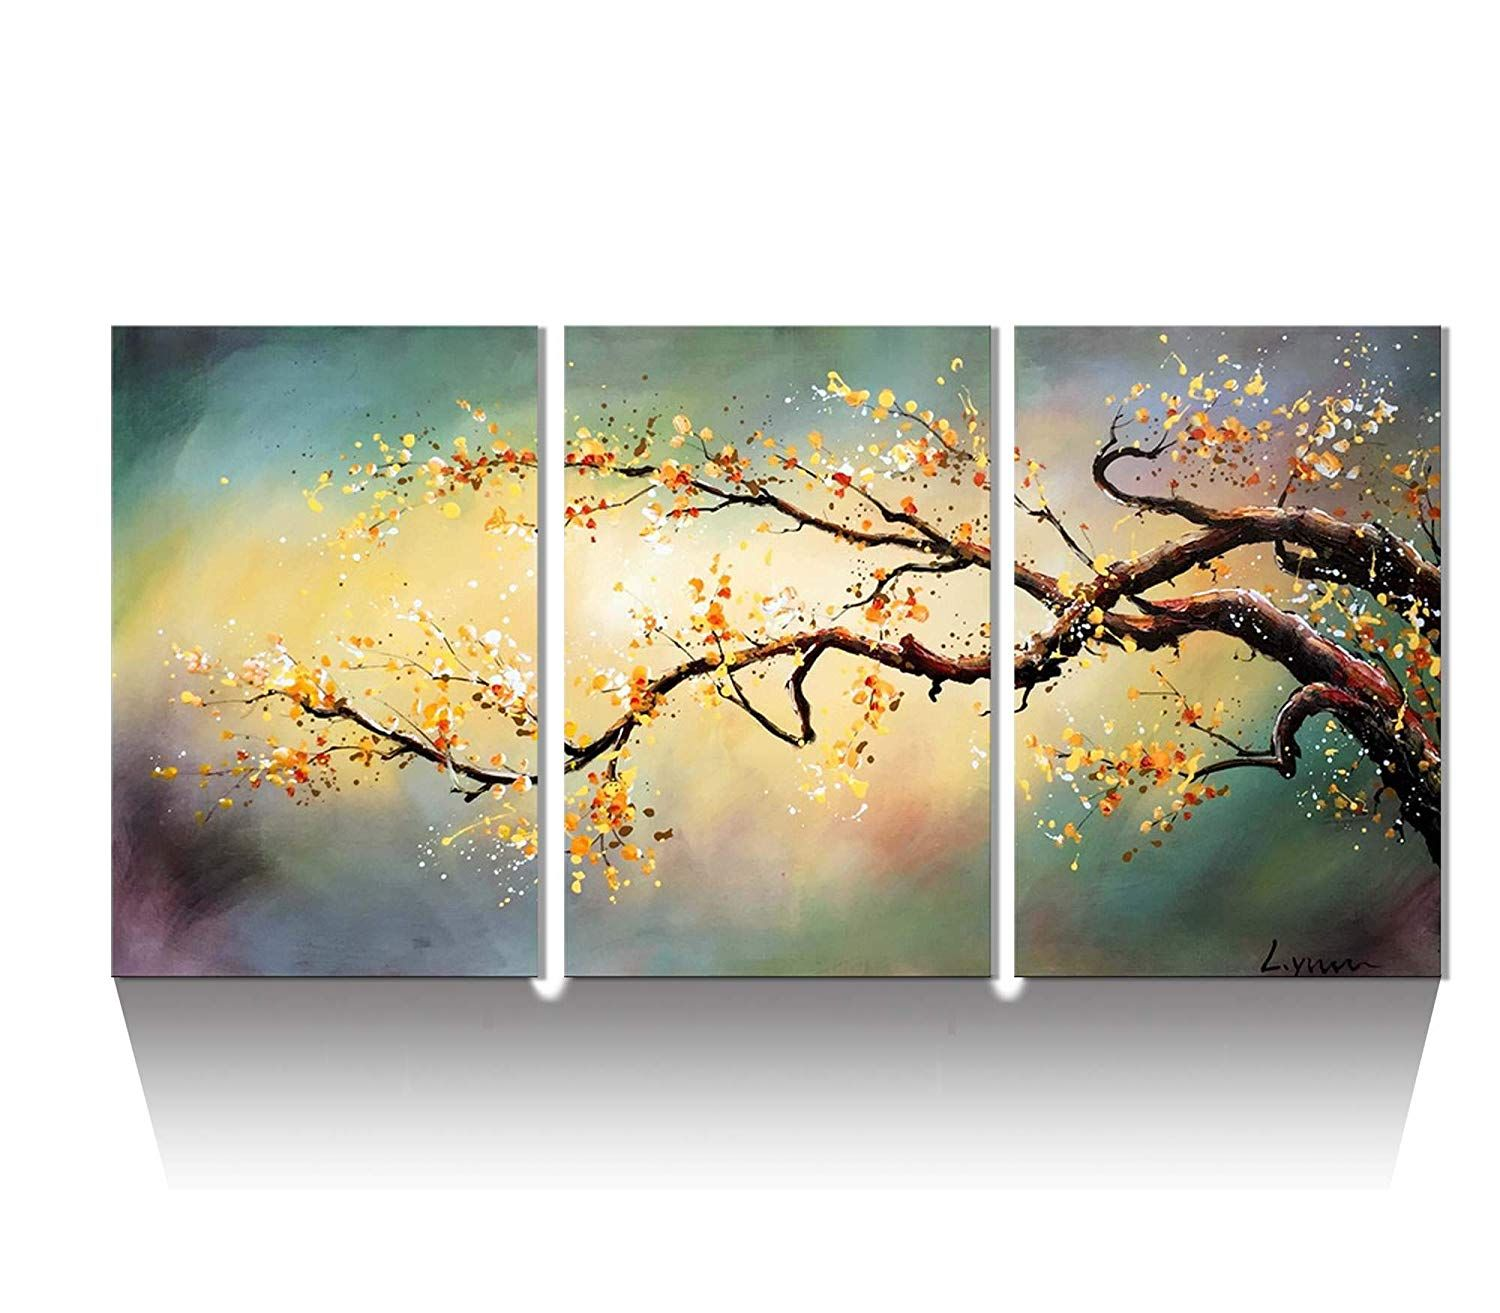 Artland Modern 100 Hand Painted Flower Oil Painting On Canvas Yellow Plum Blossom 3 Piec Modern Wall Art Canvas Abstract Canvas Wall Art Multi Canvas Painting